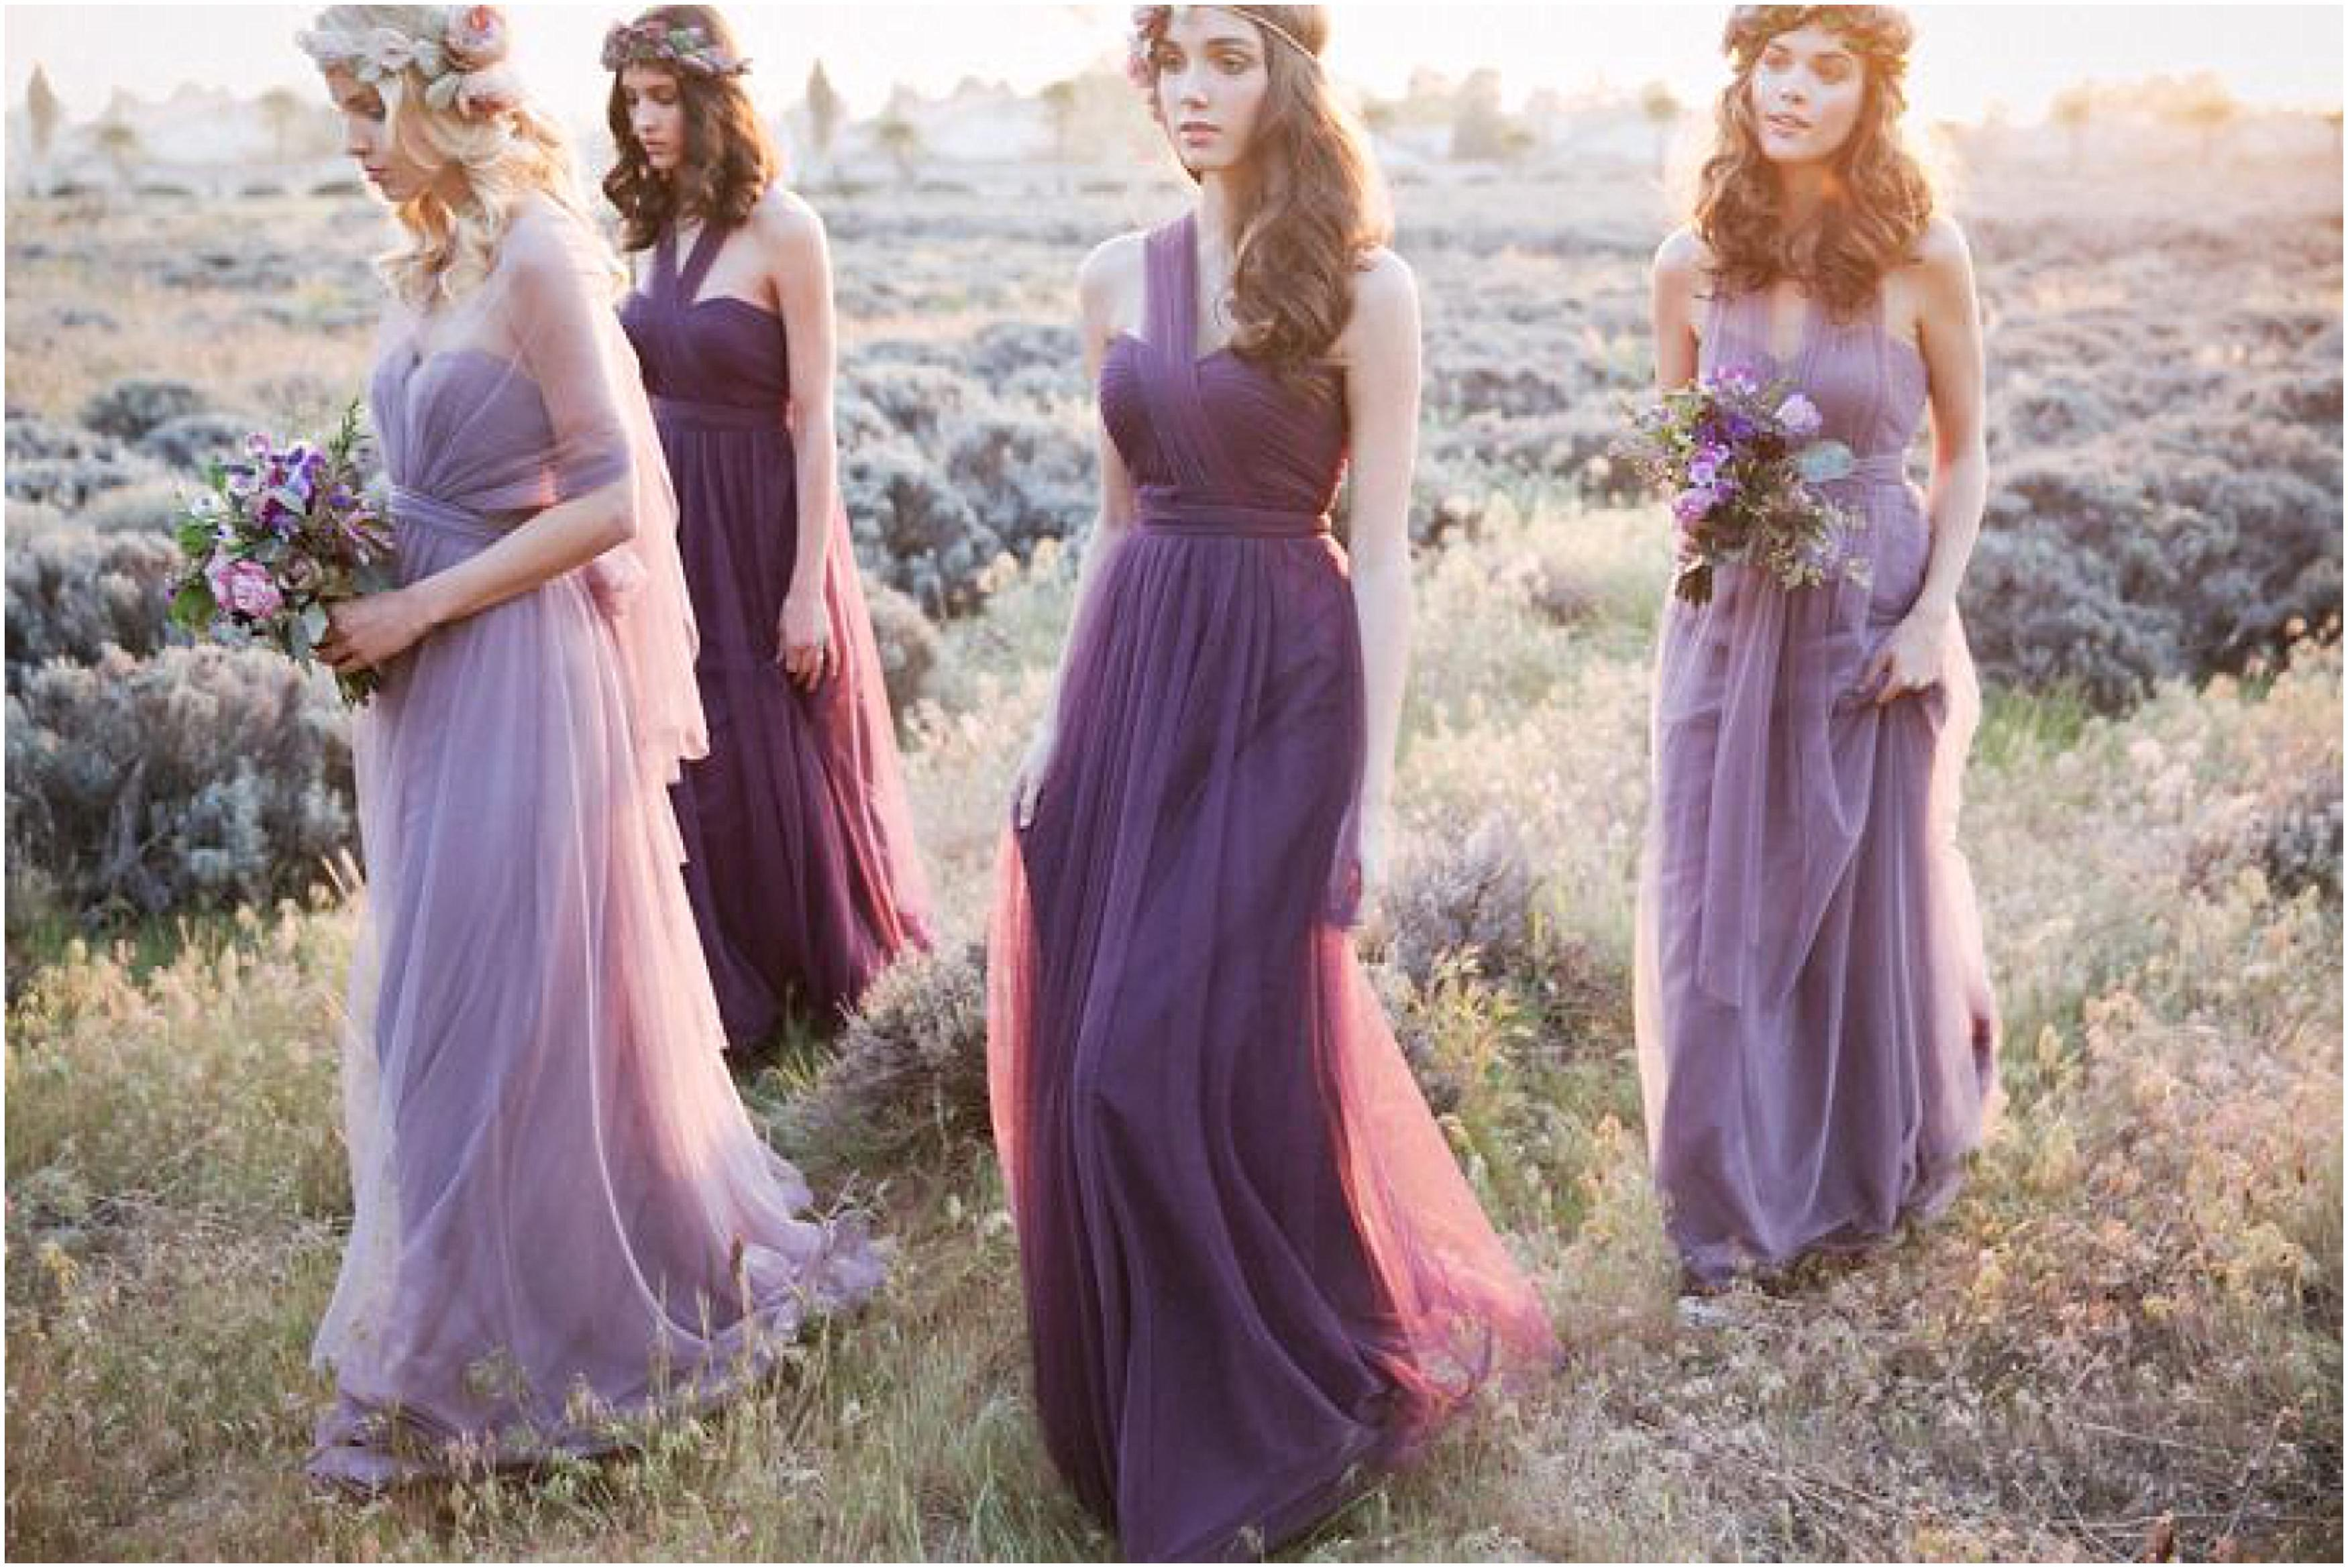 Lavender cheap long bridesmaid dresses 2016 sheer tulle a line lavender cheap long bridesmaid dresses 2016 sheer tulle a line maid of honor toast convertible dresses formal wedding party gowns custom casual bridesmaid ombrellifo Gallery